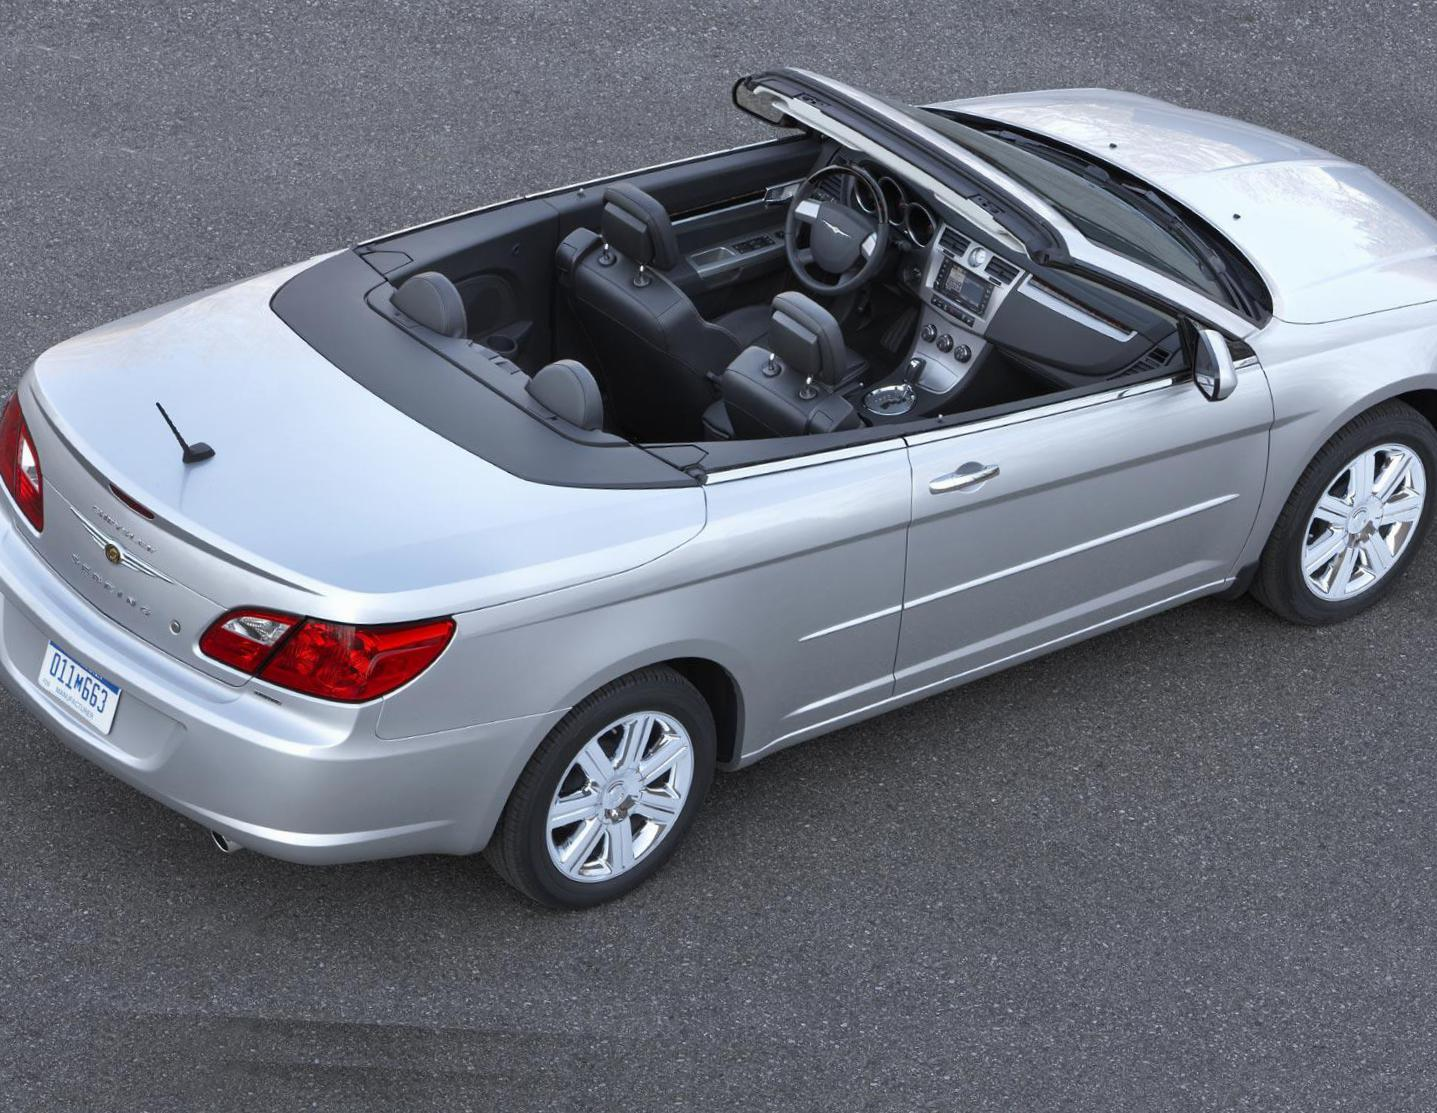 chrysler sebring cabrio photos and specs photo sebring cabrio chrysler price and 24 perfect. Black Bedroom Furniture Sets. Home Design Ideas